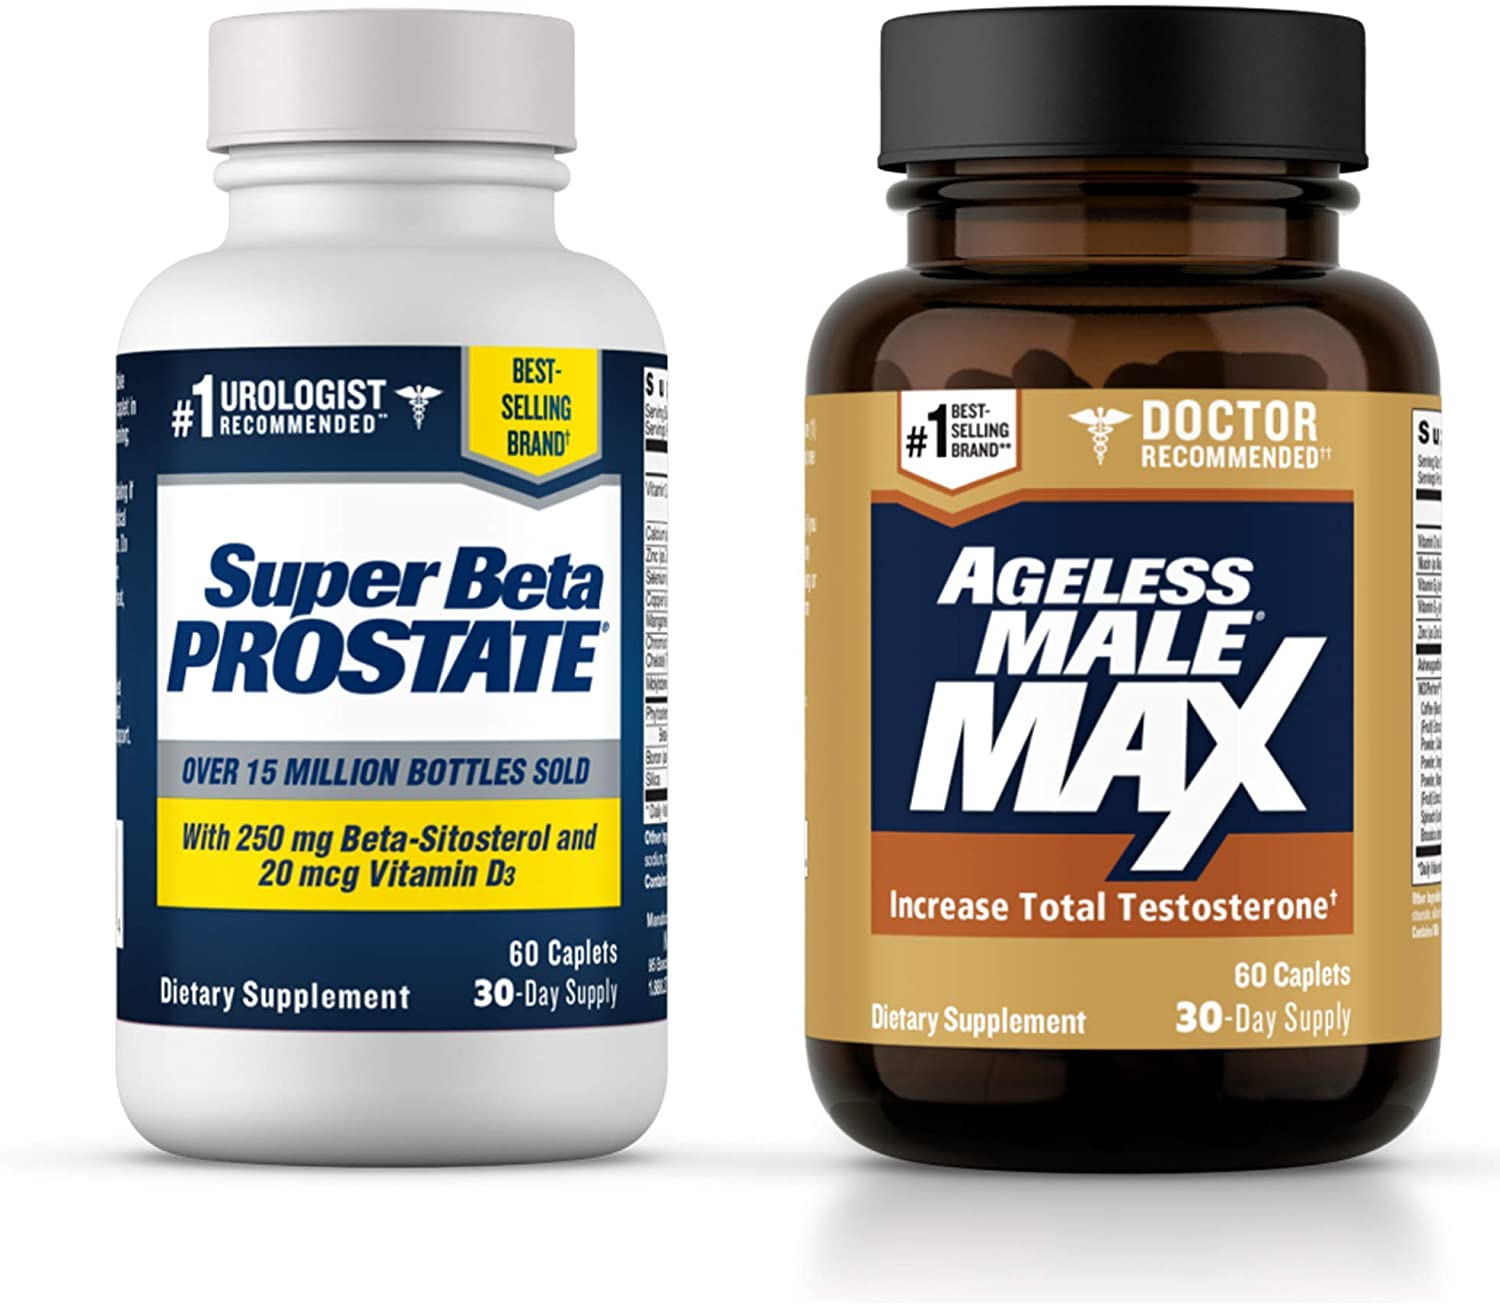 Ageless Male Max Total Testosterone Booster and Super Beta